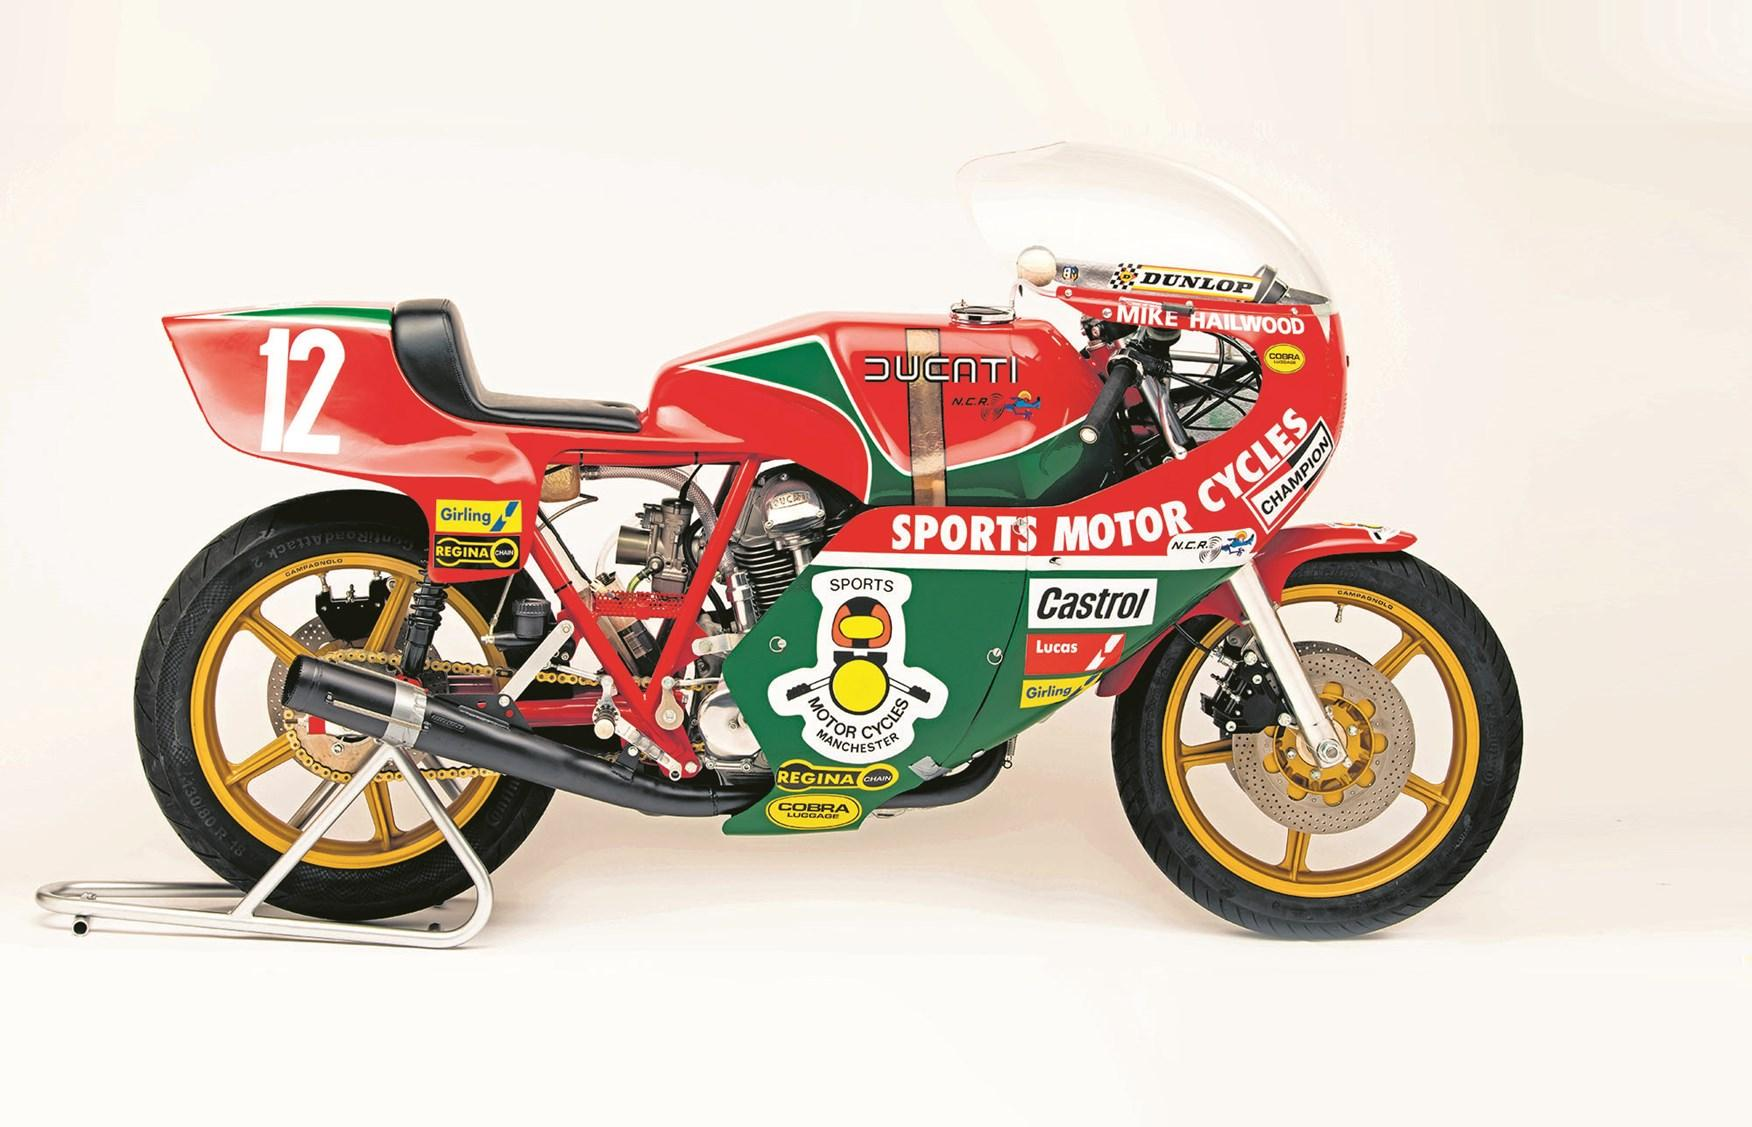 Ducati give blessing for 1978 Hailwood replicas